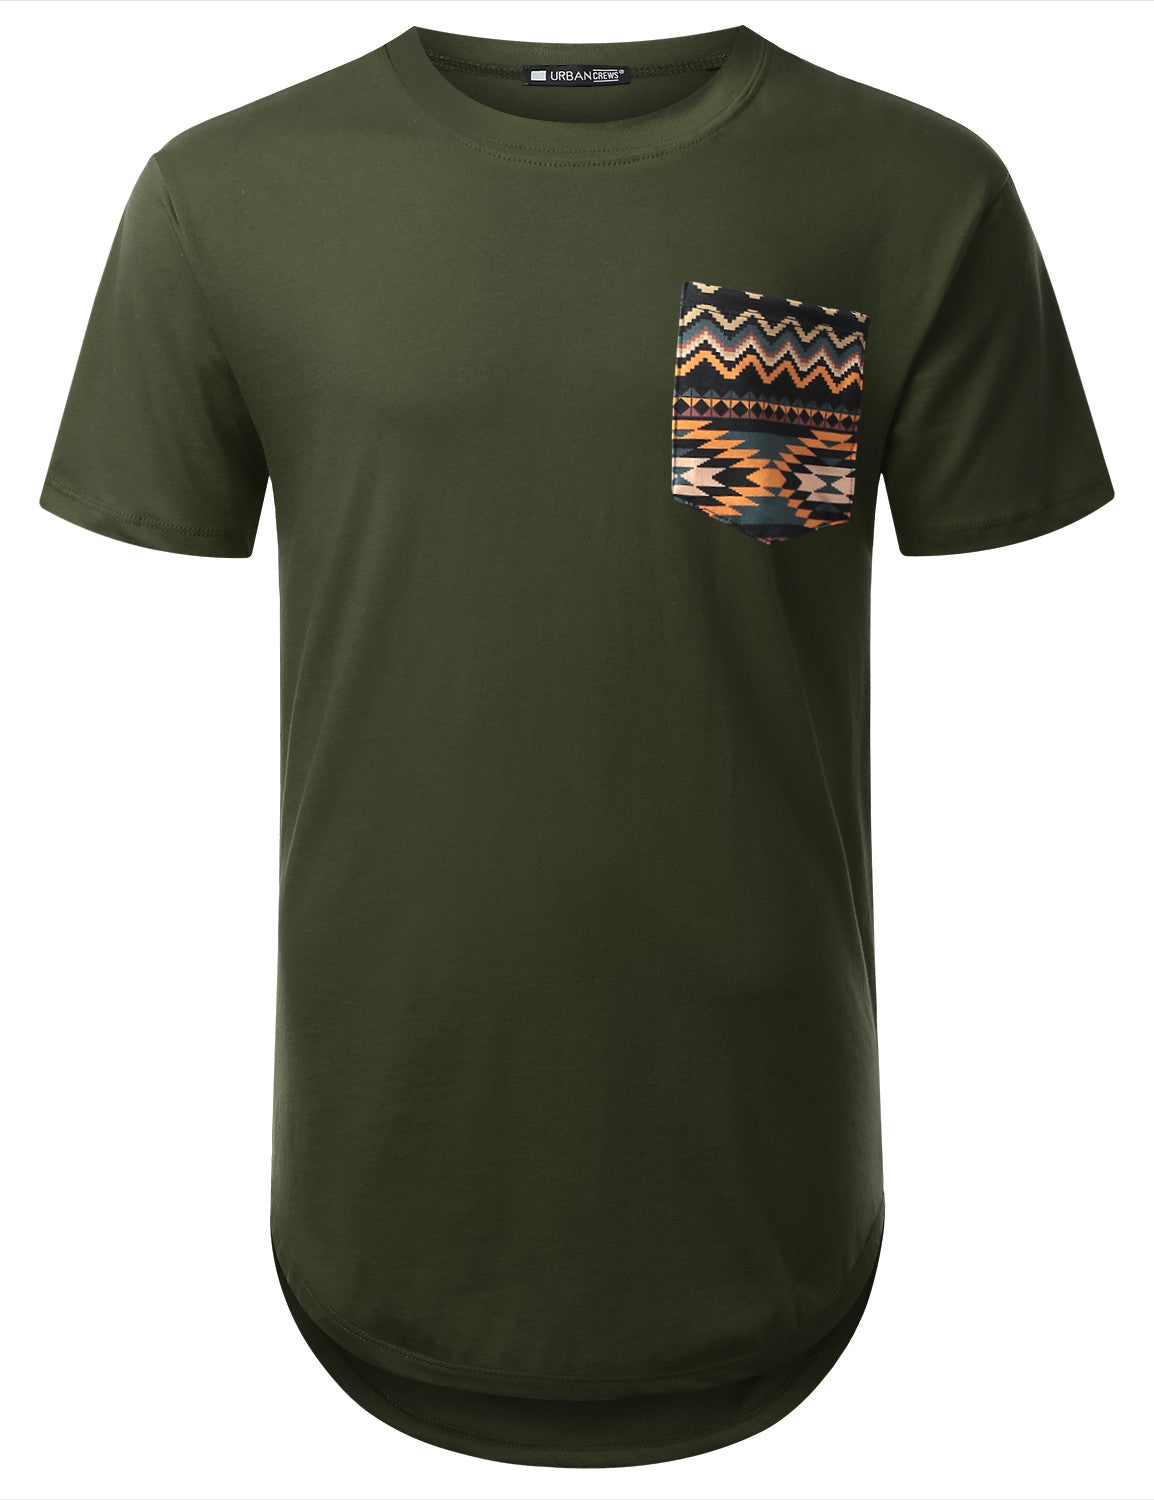 OLIVE Aztec Camo Pocket Longline T-shirt - URBANCREWS